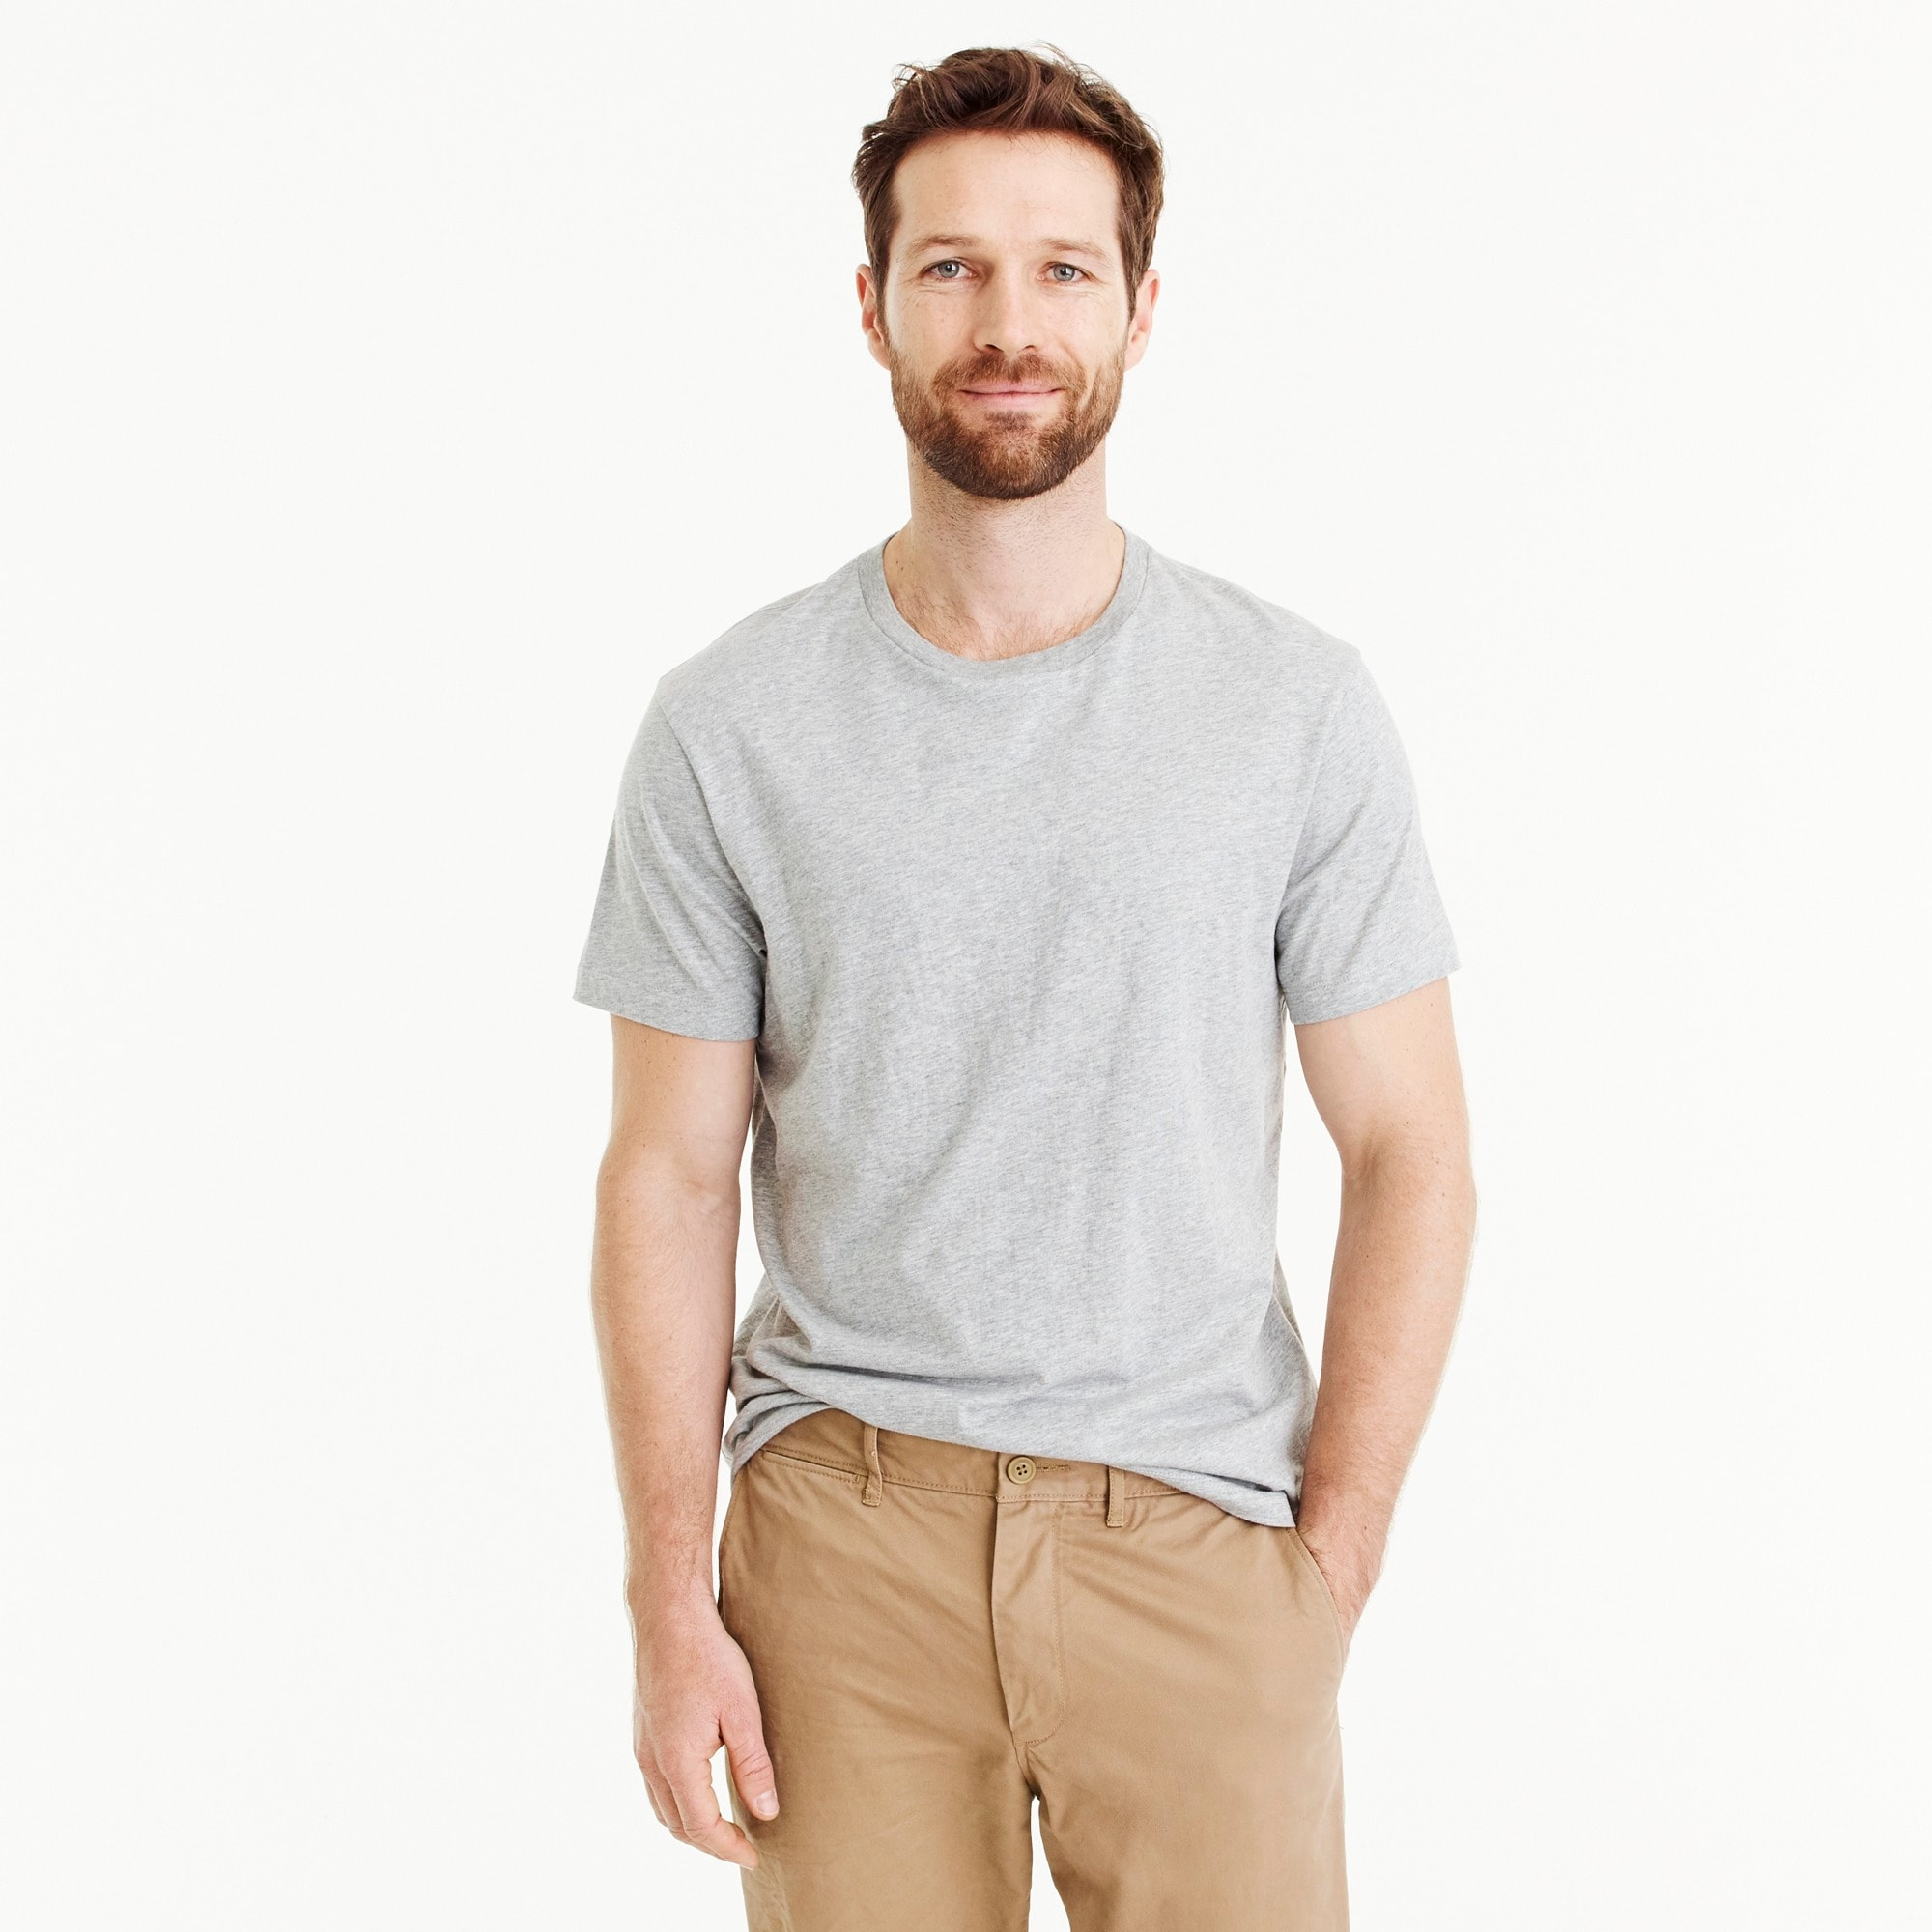 Tall J.Crew Mercantile Broken-in crewneck T-shirt in heather grey